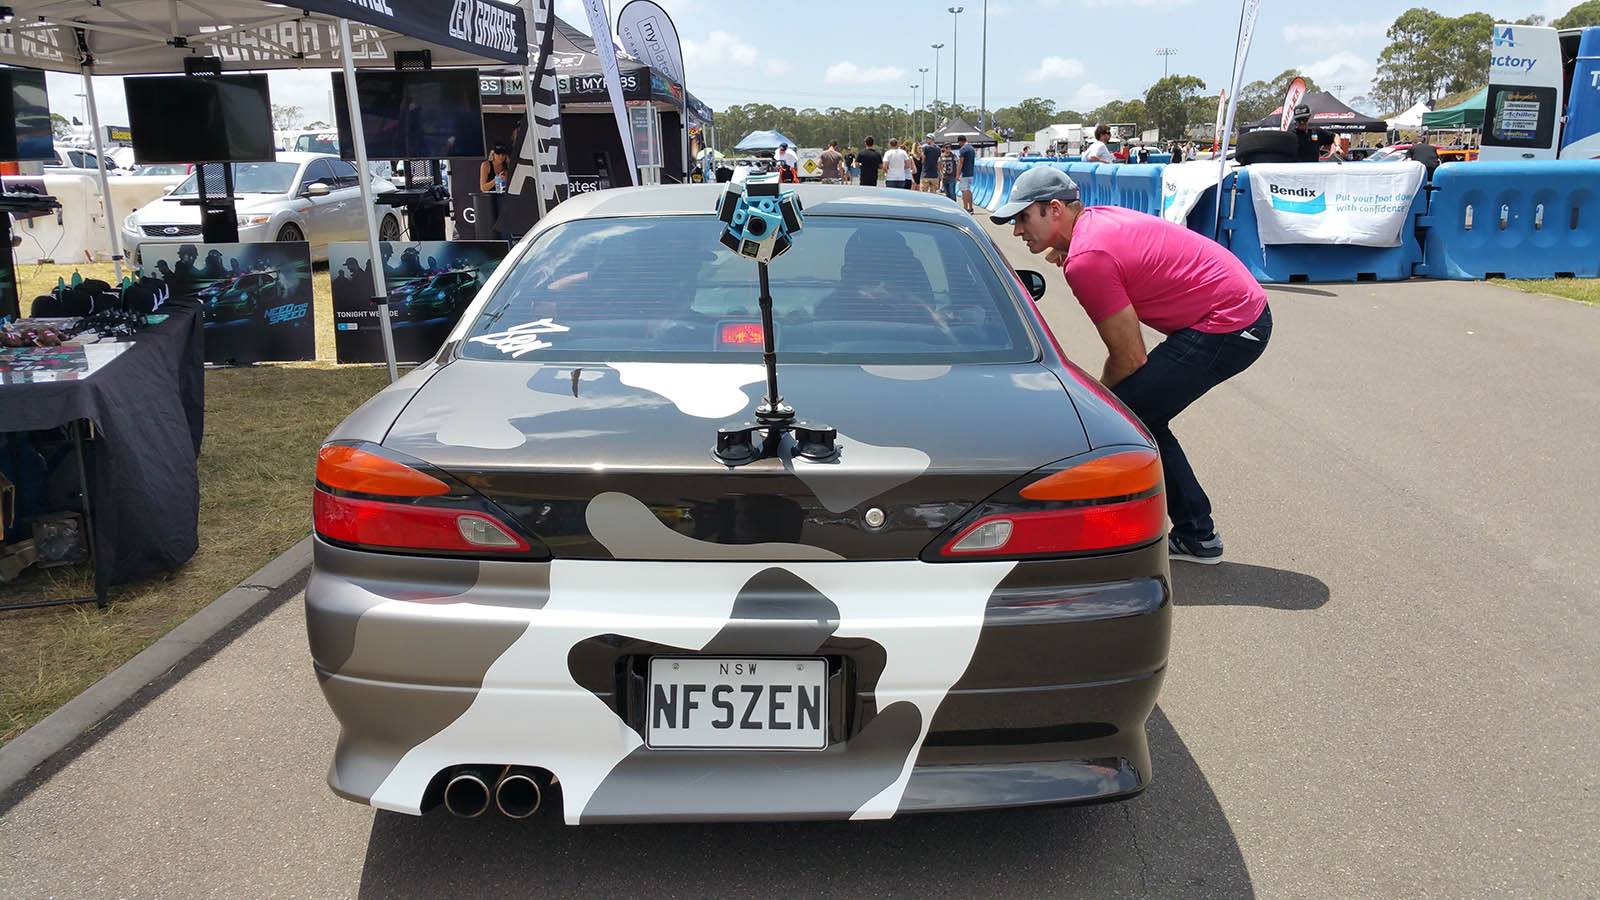 Need For Speed - Crew Create project S15 by Zen Garage with 360 rig mounted on the booth